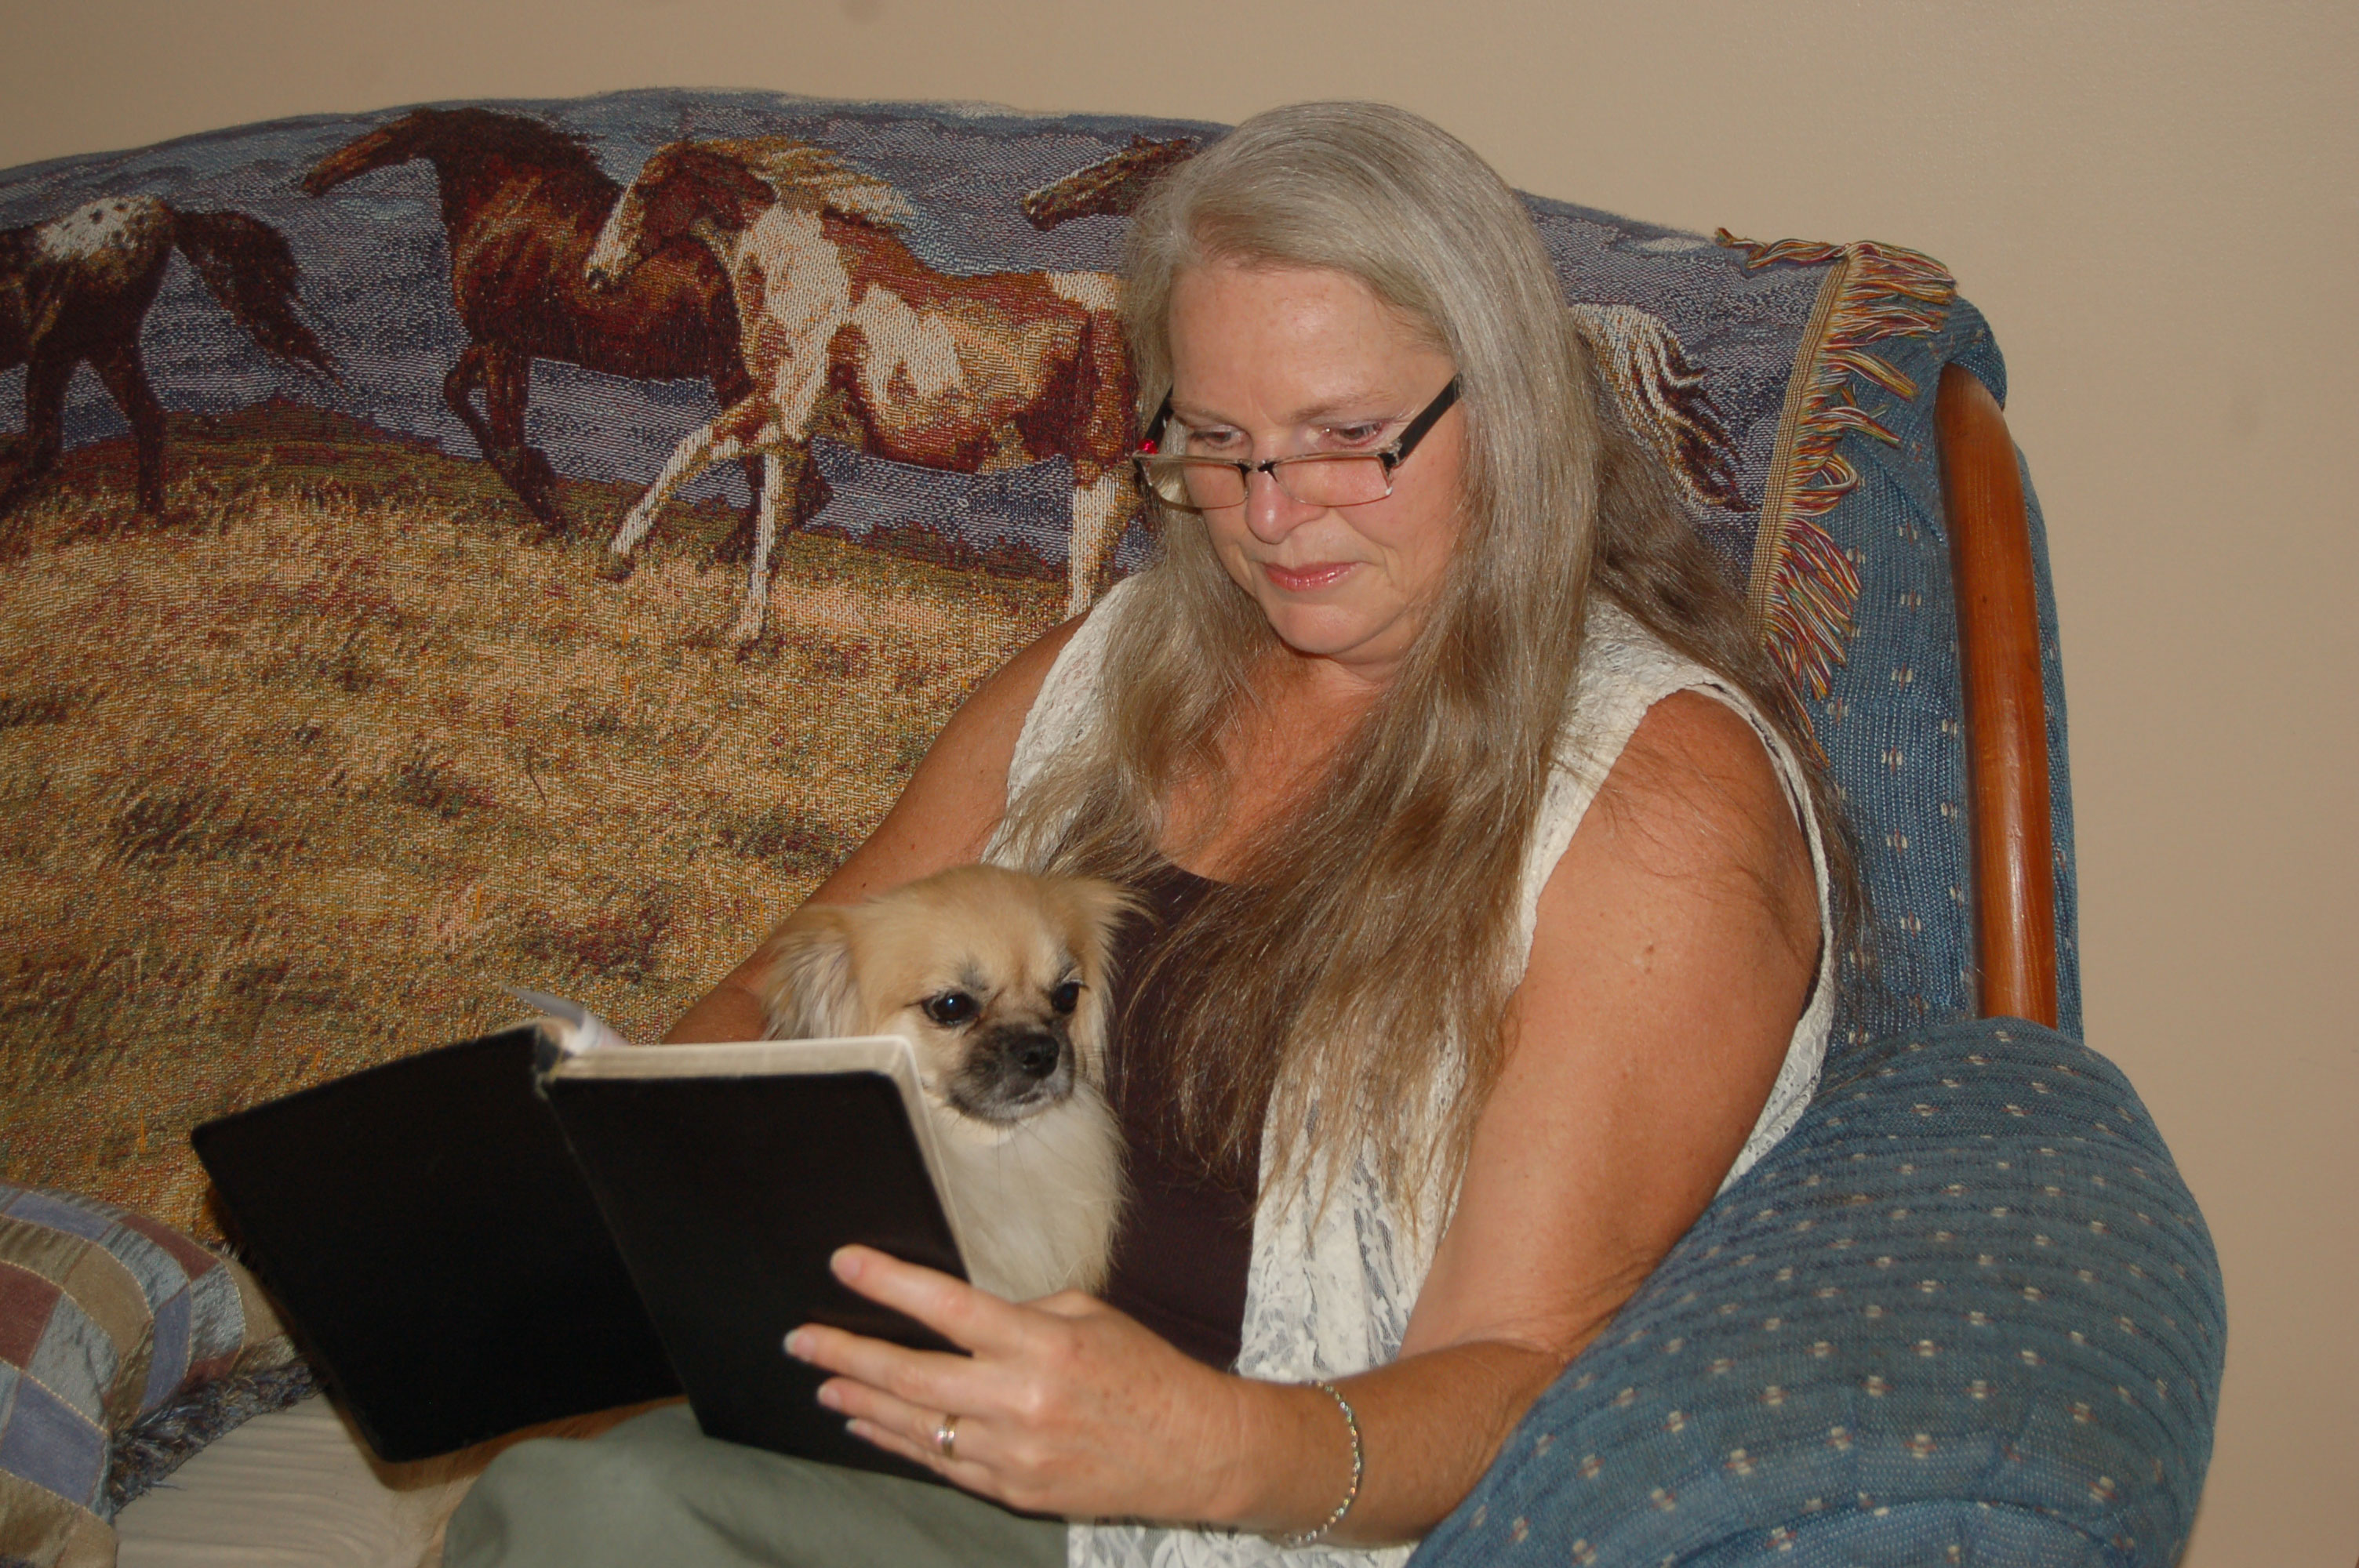 Christian Stock Photos by Linda Bateman - Woman Reading Bible while Sitting on Sofa, with Dog